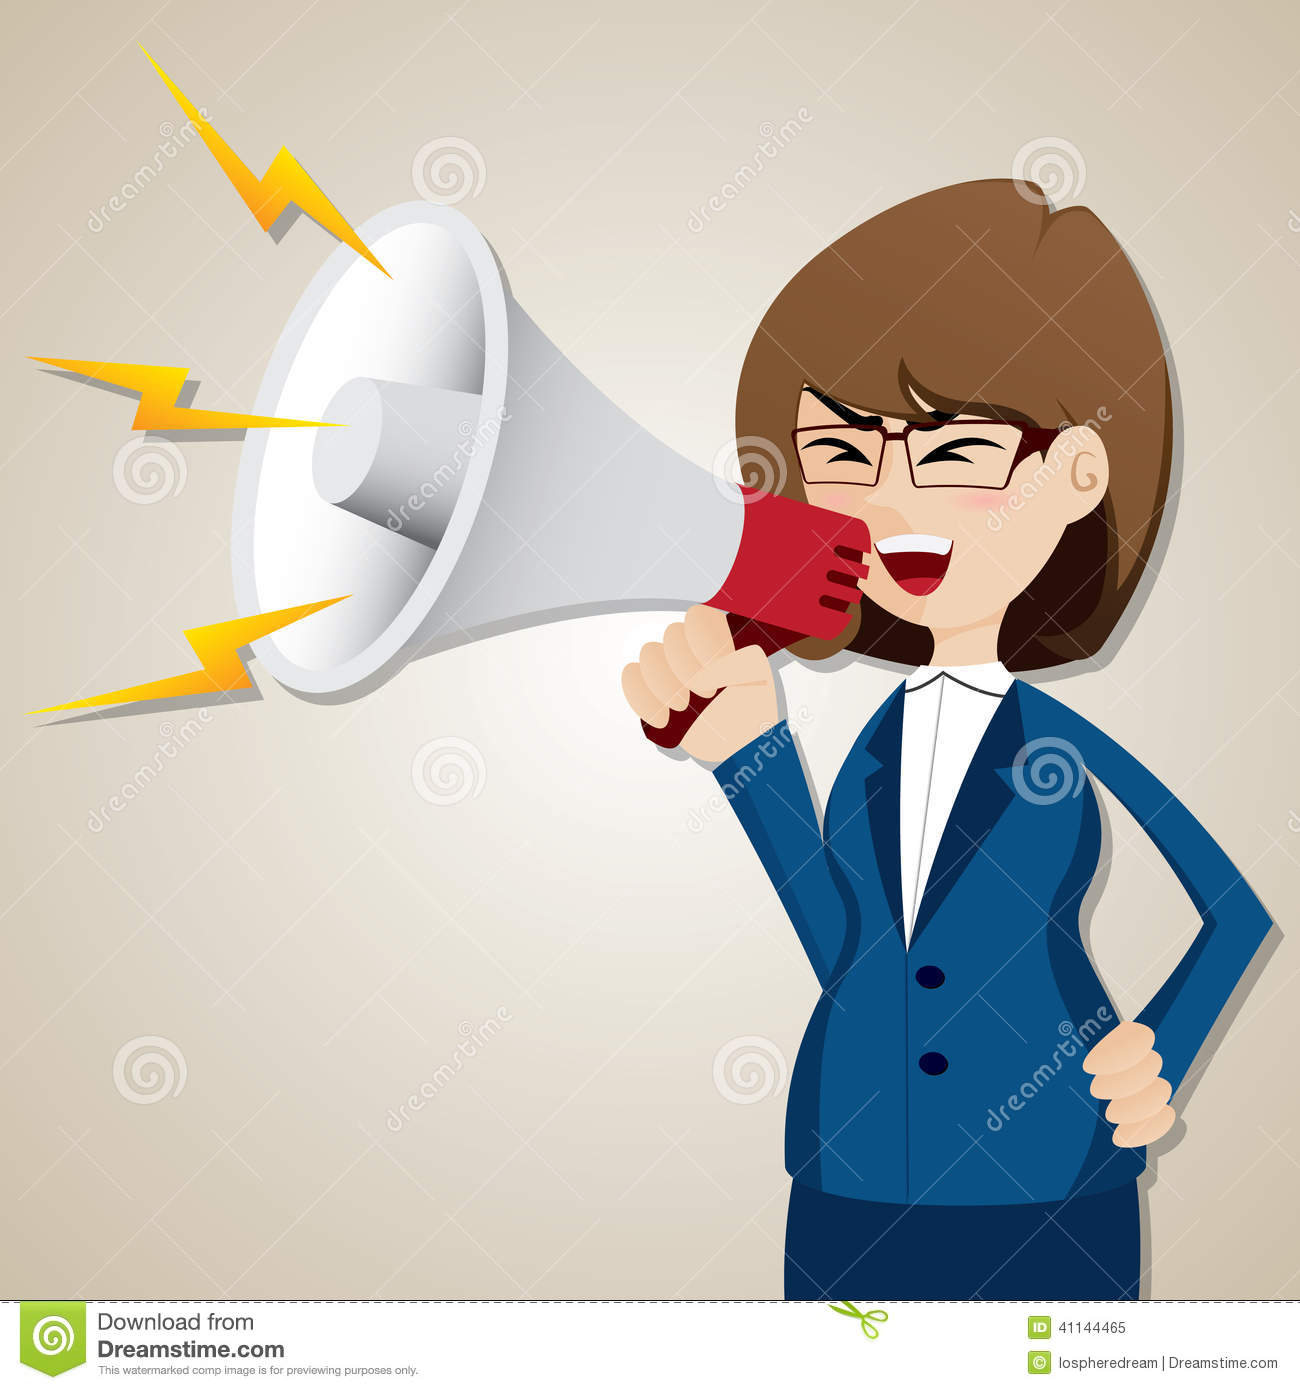 ... Businesswoman Shout Out With Megaphone Stock Vector - Image: 41144465